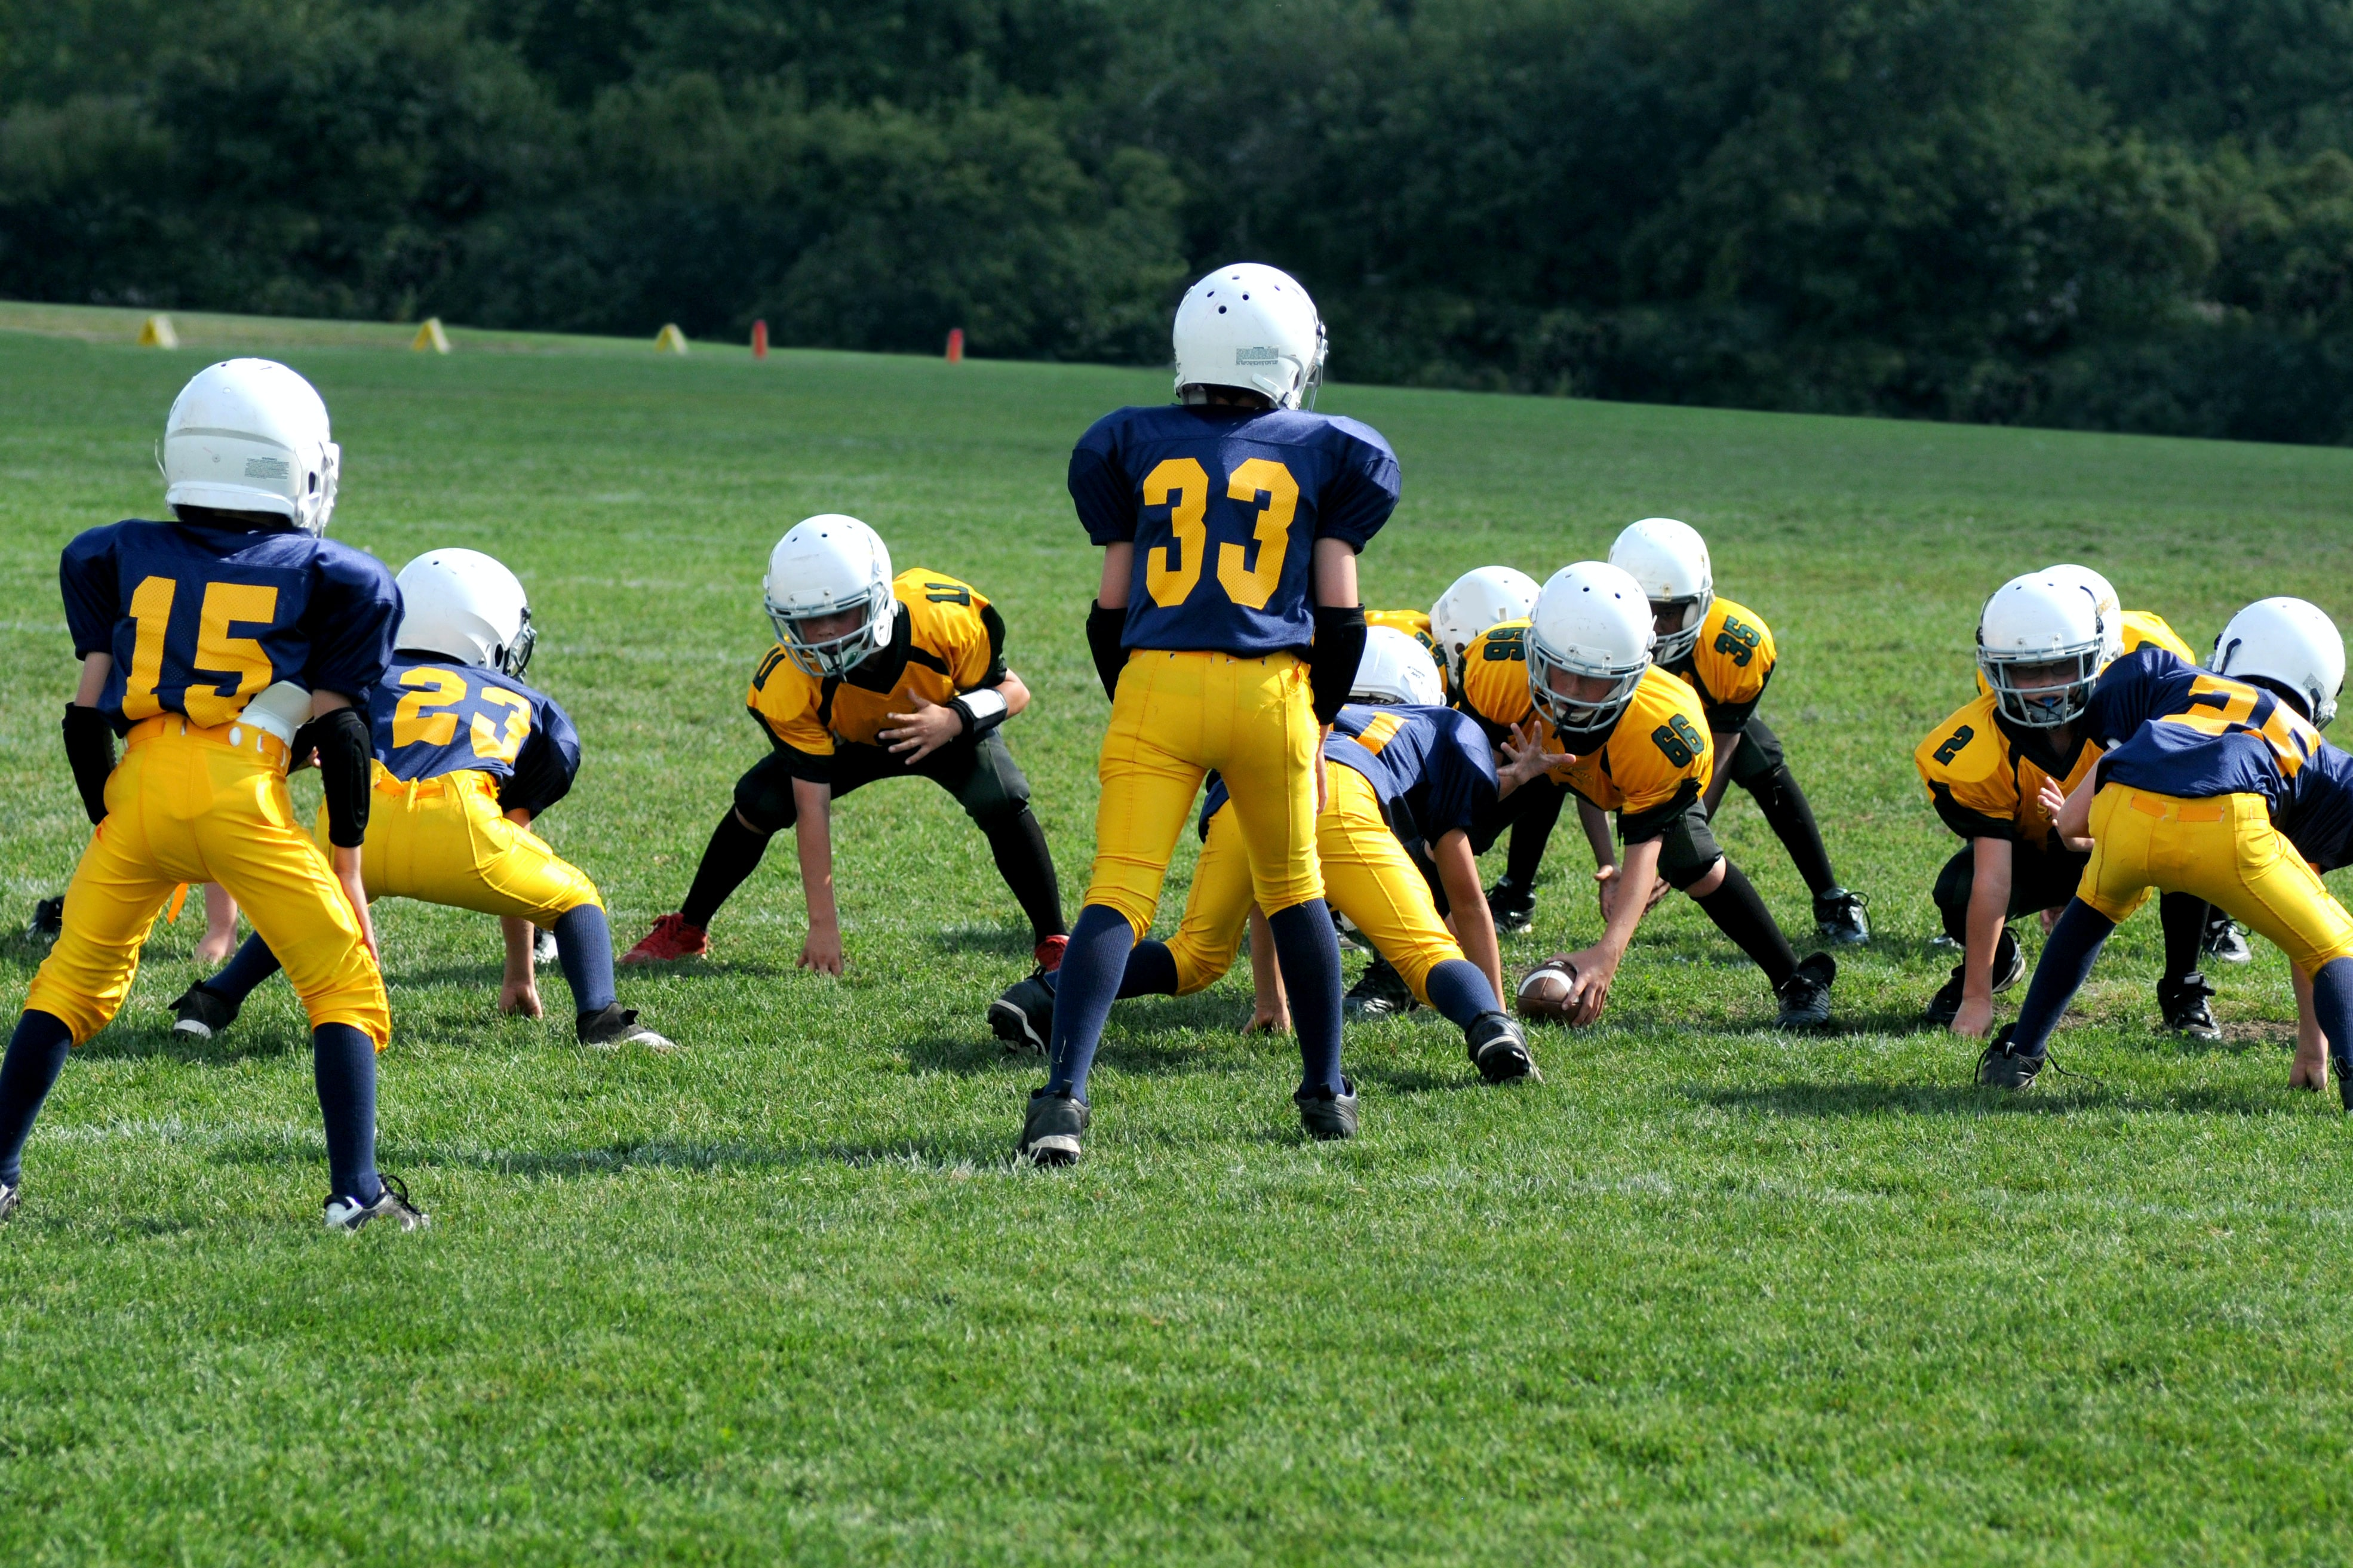 two teams playing football